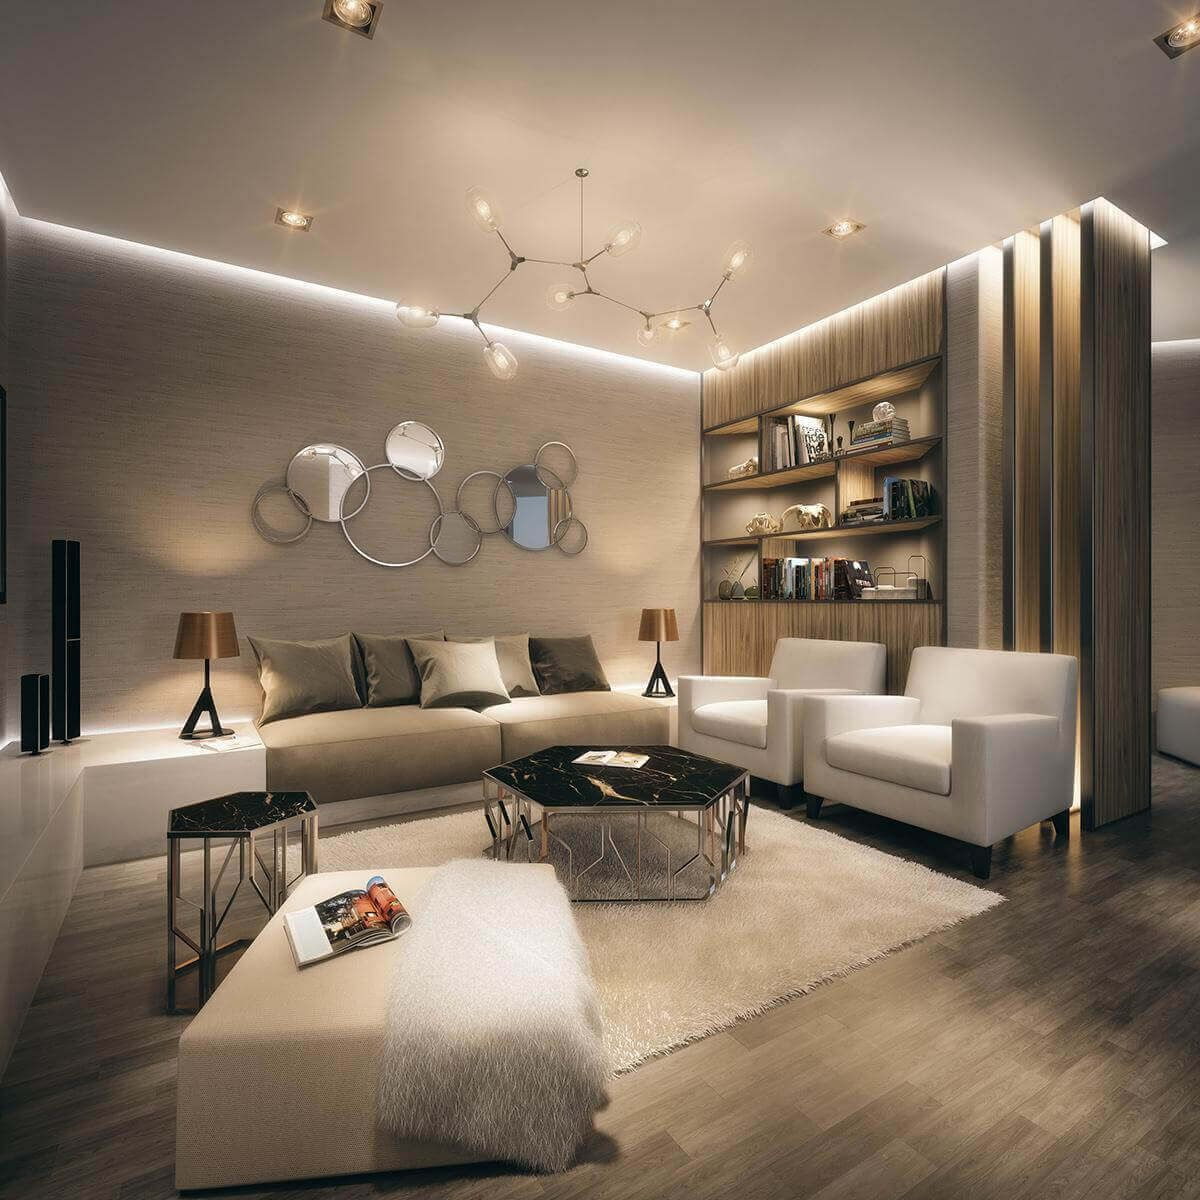 Home Decor 2012 Luxury Homes Interior Decoration Living: Outstanding Hall And Entrance Designs For Your New Home